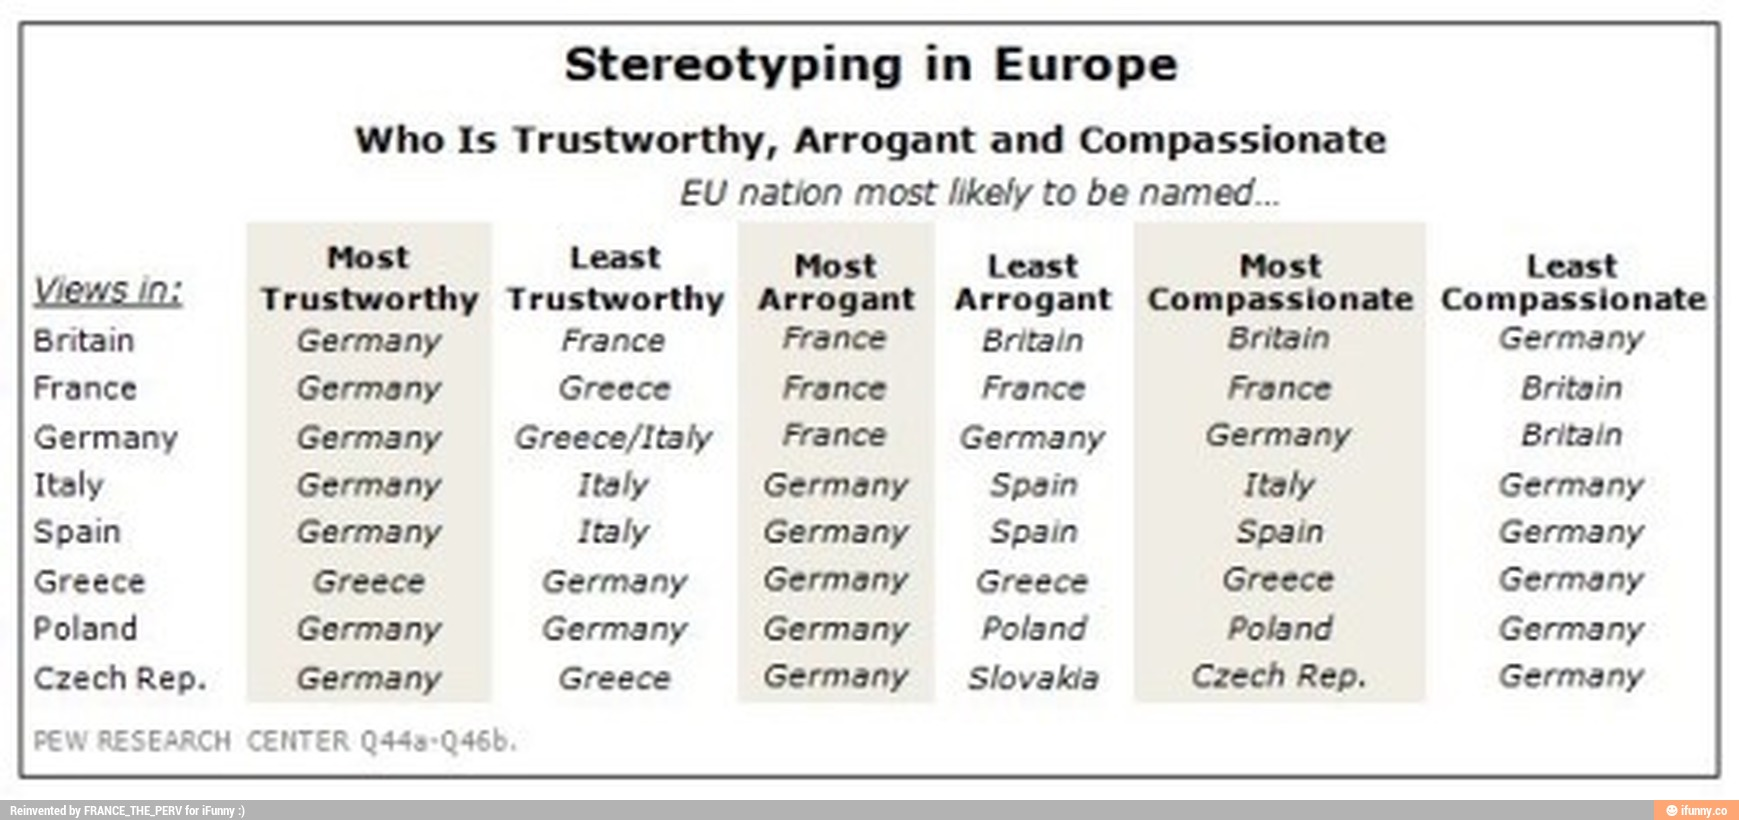 a definition of stereotypes and the ways in which stereotype affect our thinking about other people